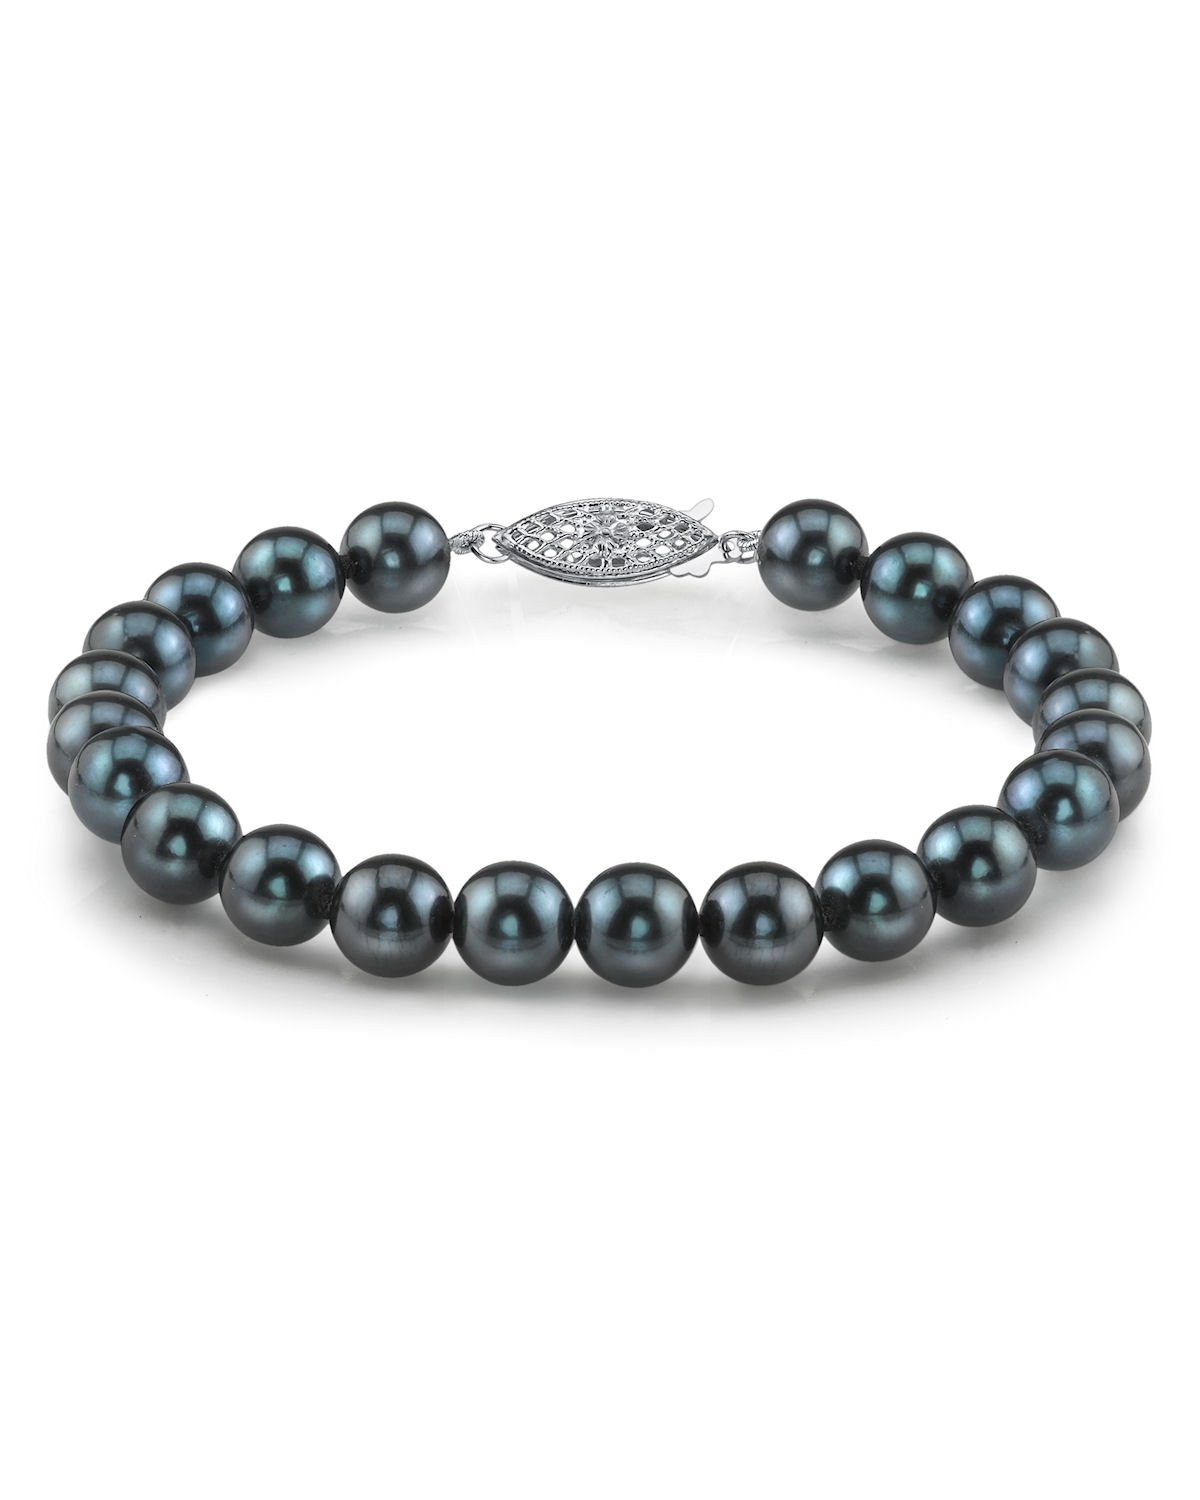 5.0-5.5mm Black Akoya Cultured Pearl Bracelet